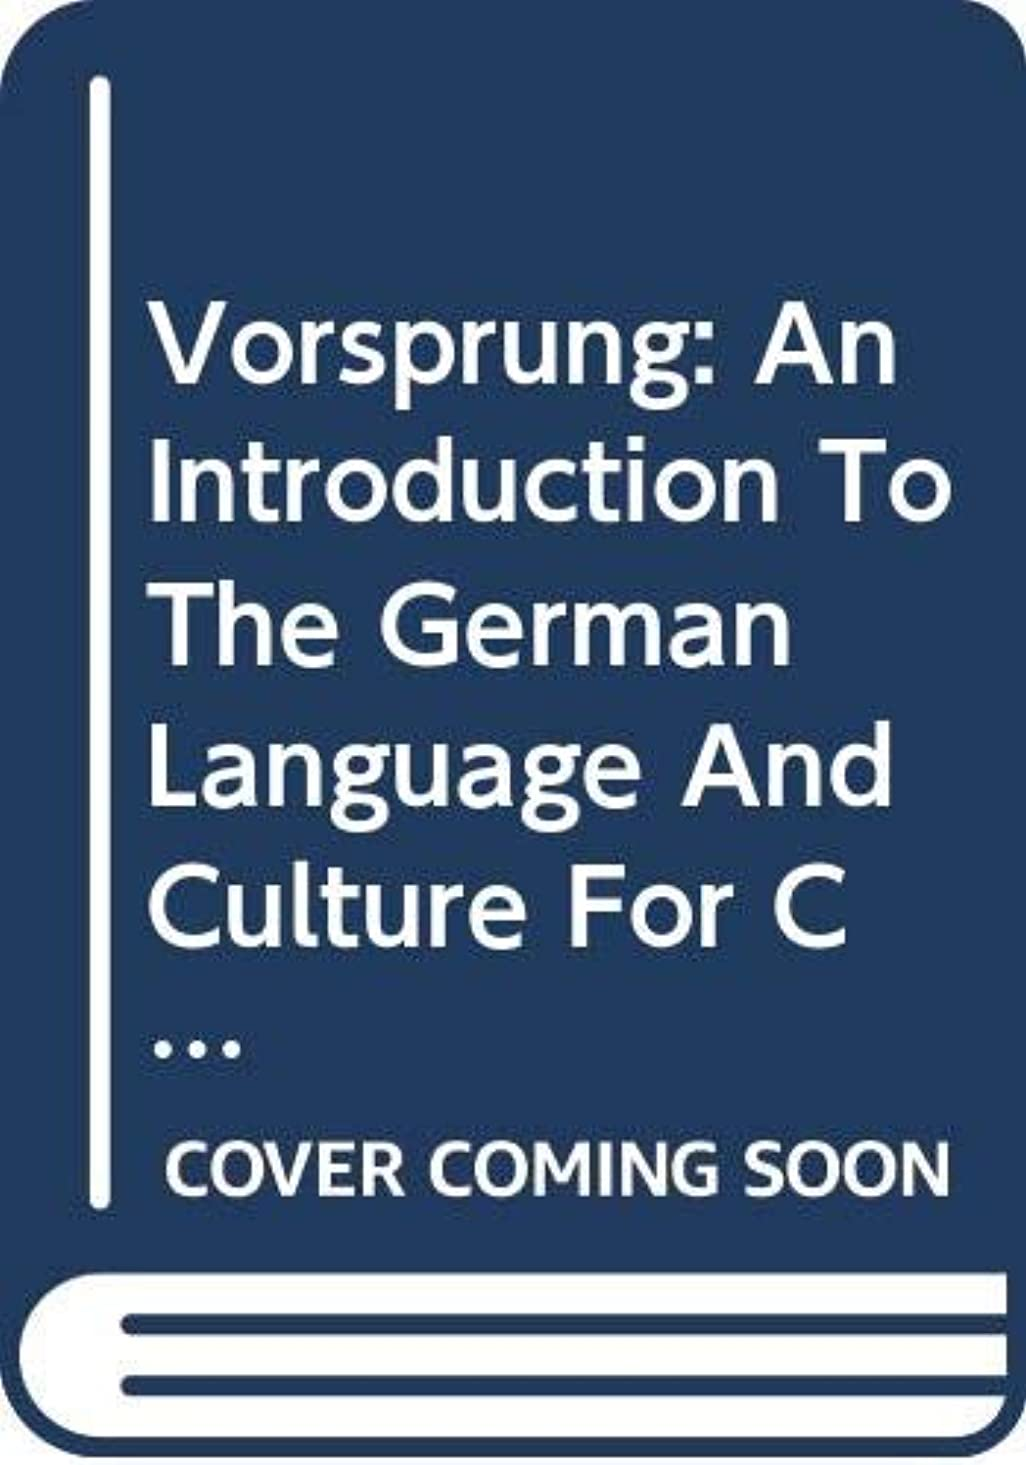 時系列矢印突き刺すVorsprung: An Introduction To The German Language And Culture For Communication